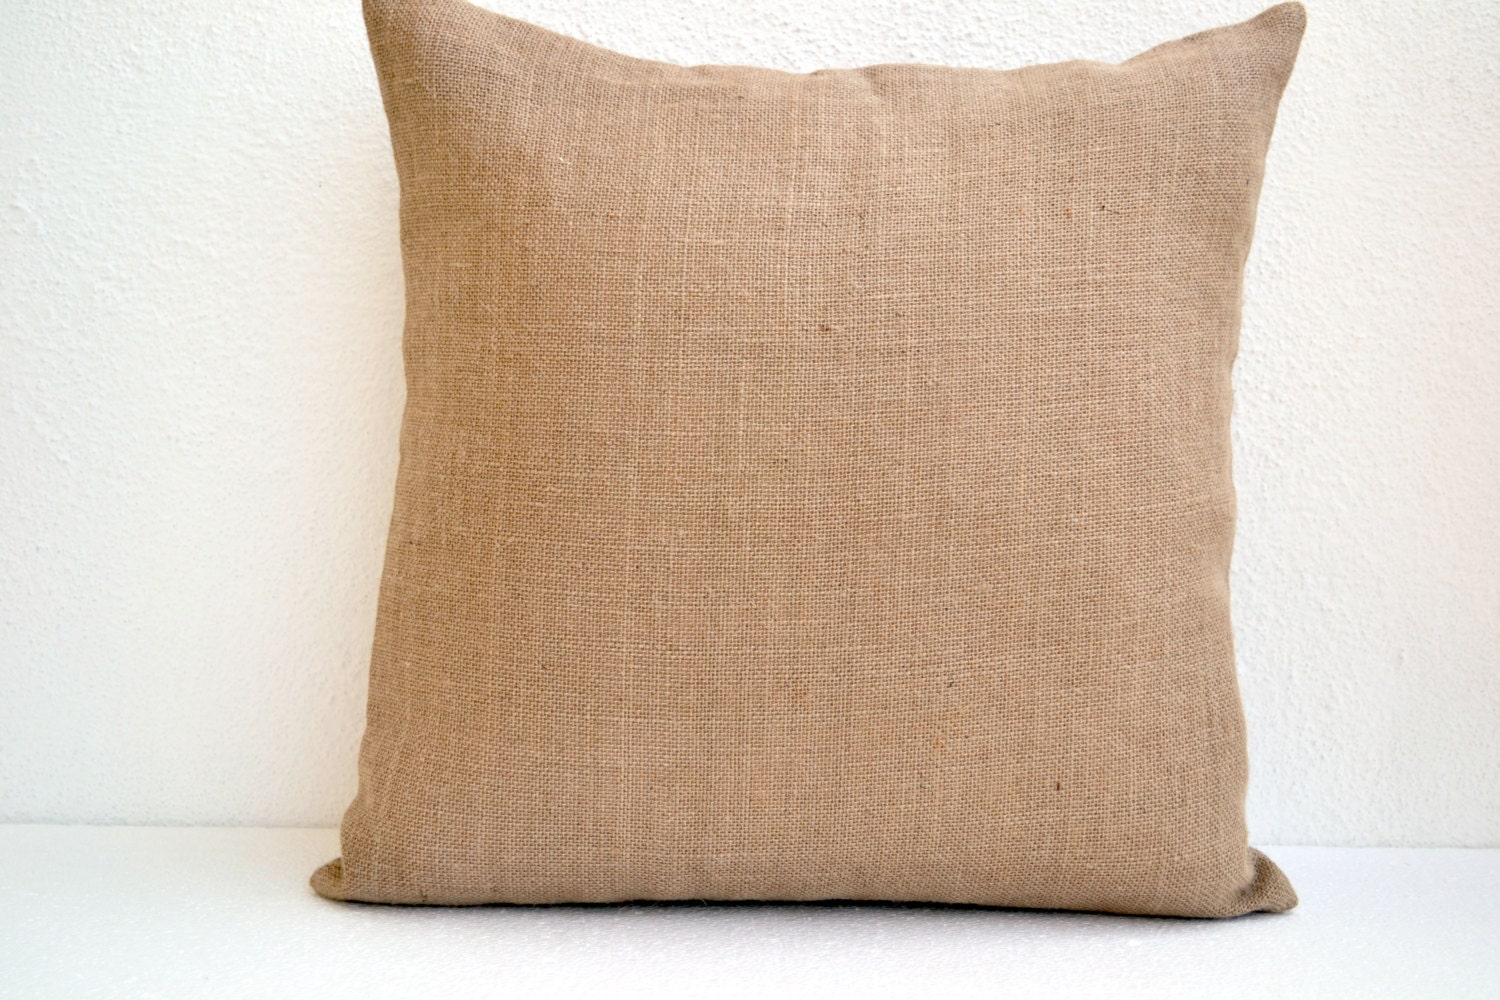 Natural Burlap Pillow Cover Button Closure Decorative Throw